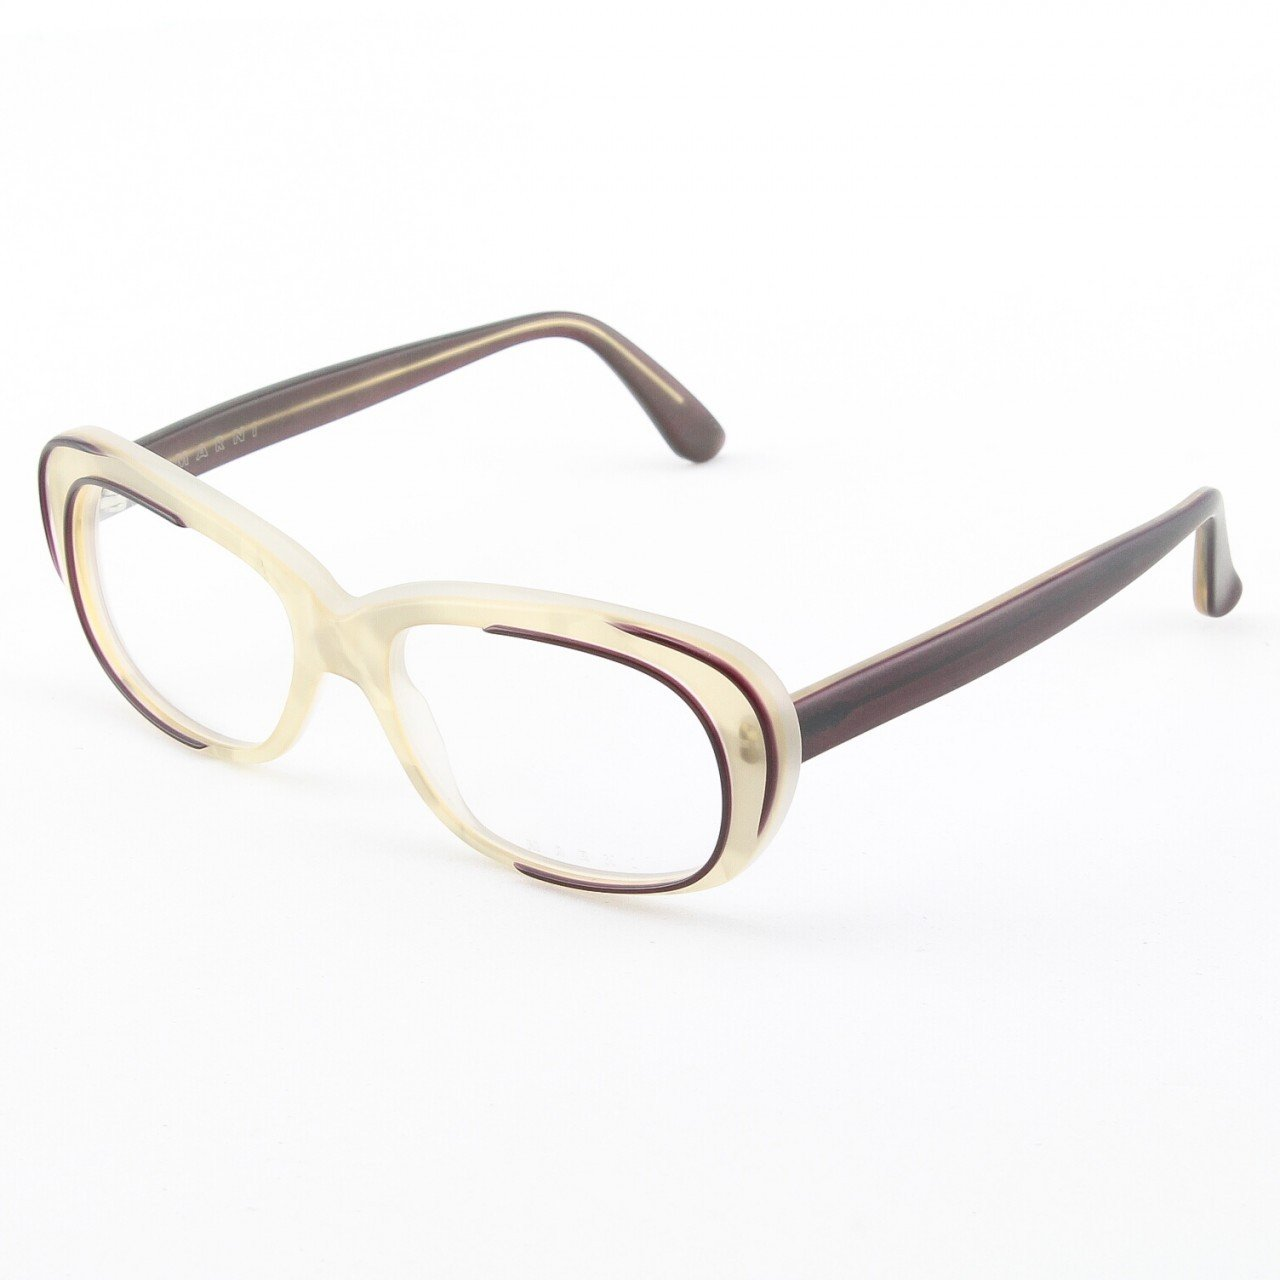 Marni MA670S Eyeglasses Col. 03 Frosted Cream with Deep Burgundy Accents and Clear Lenses